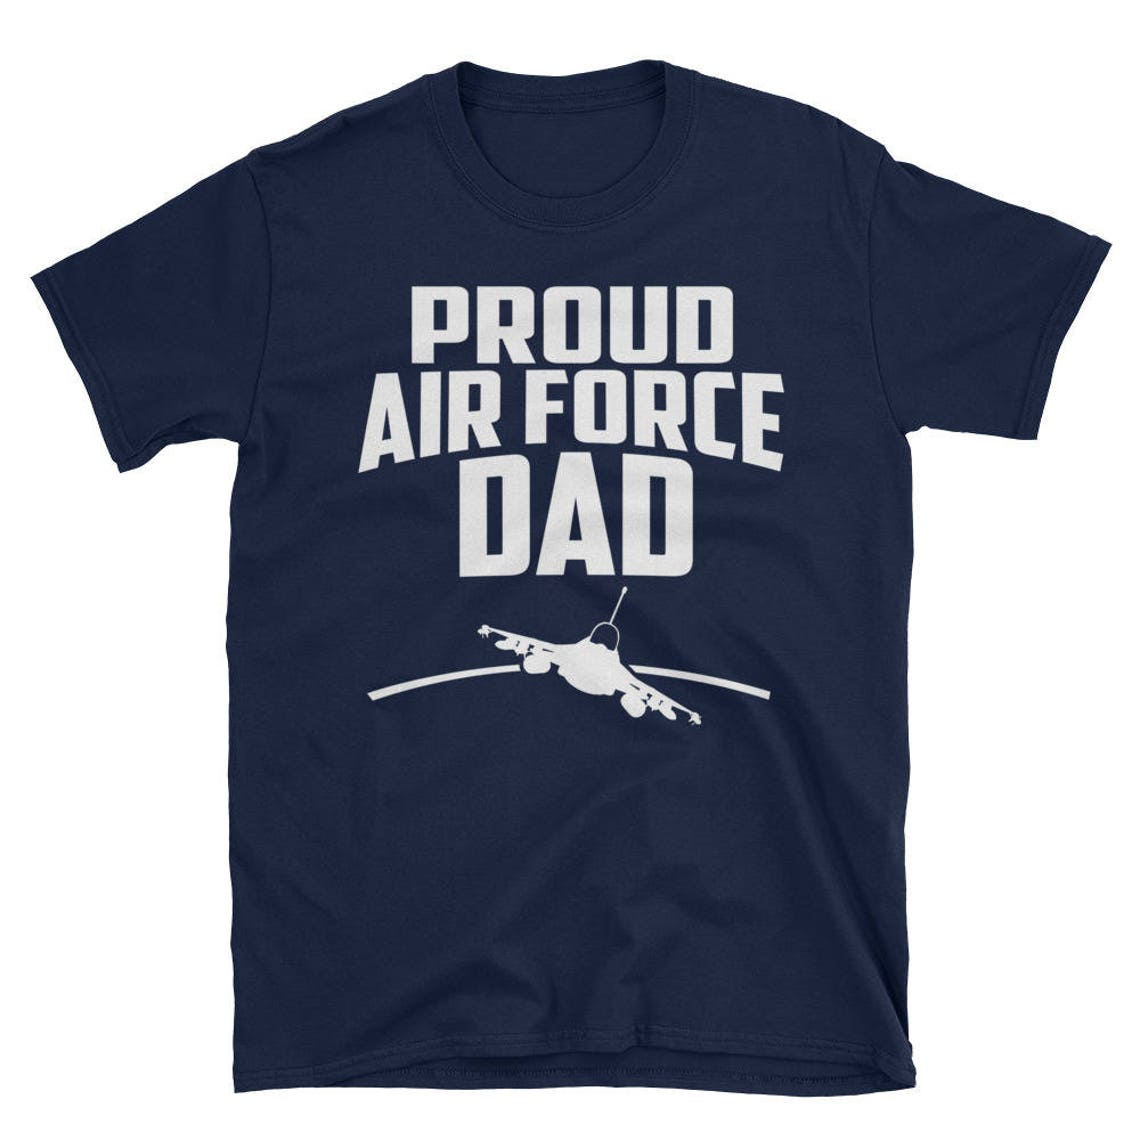 39a68afb Proud Air Force Dad Military Dad T Shirt gifts for dad army | Etsy